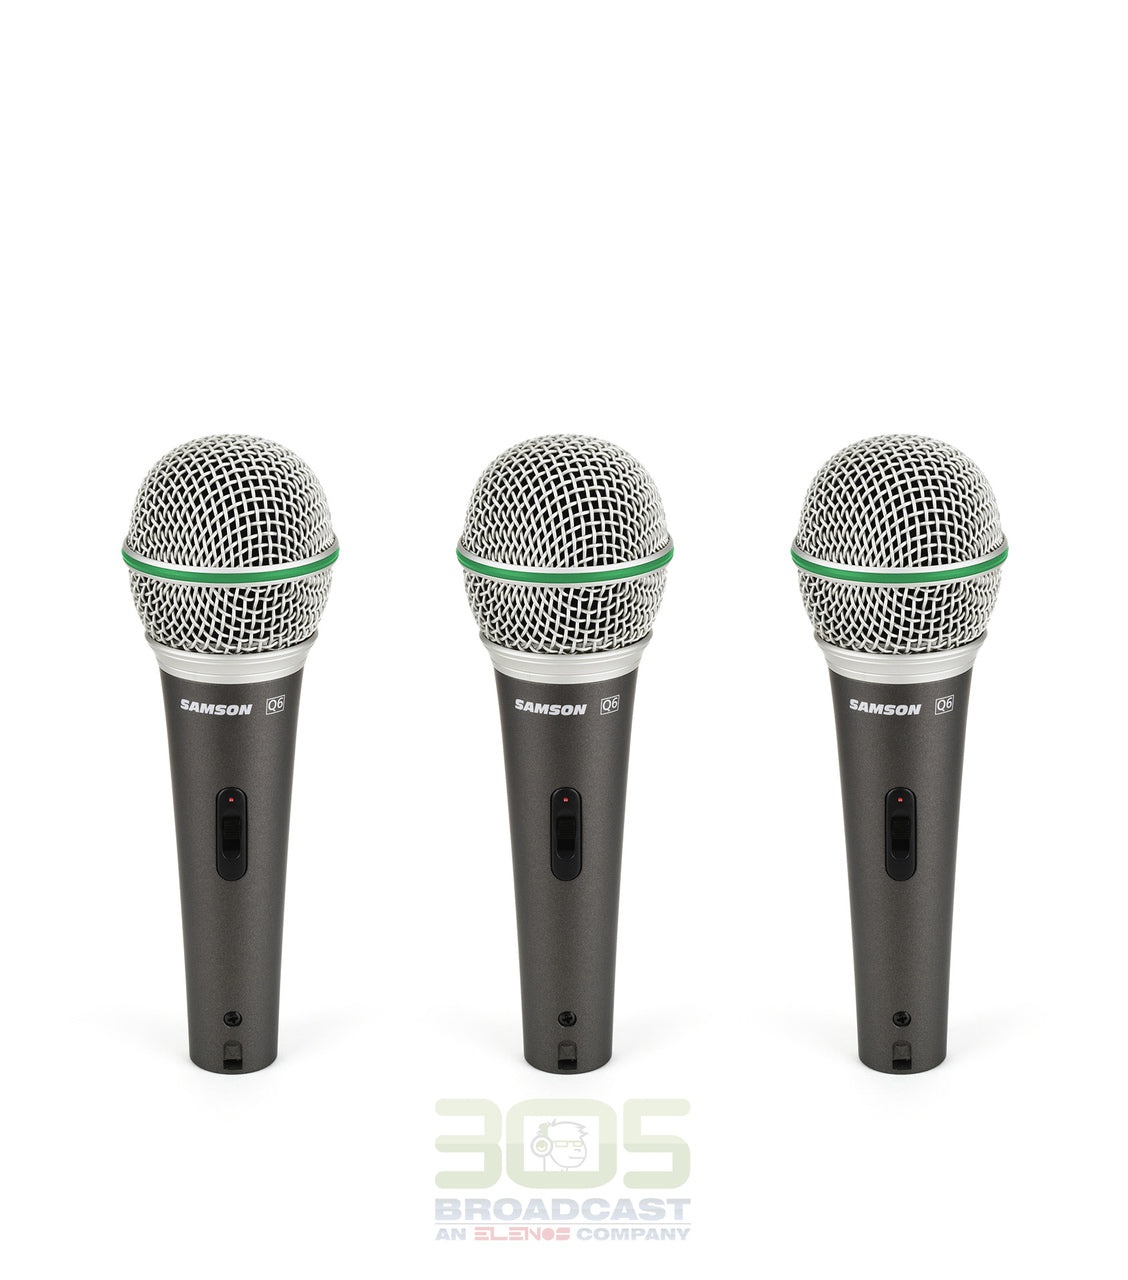 Samson Q6 Dynamic Microphone (3-Pack) - 305broadcast